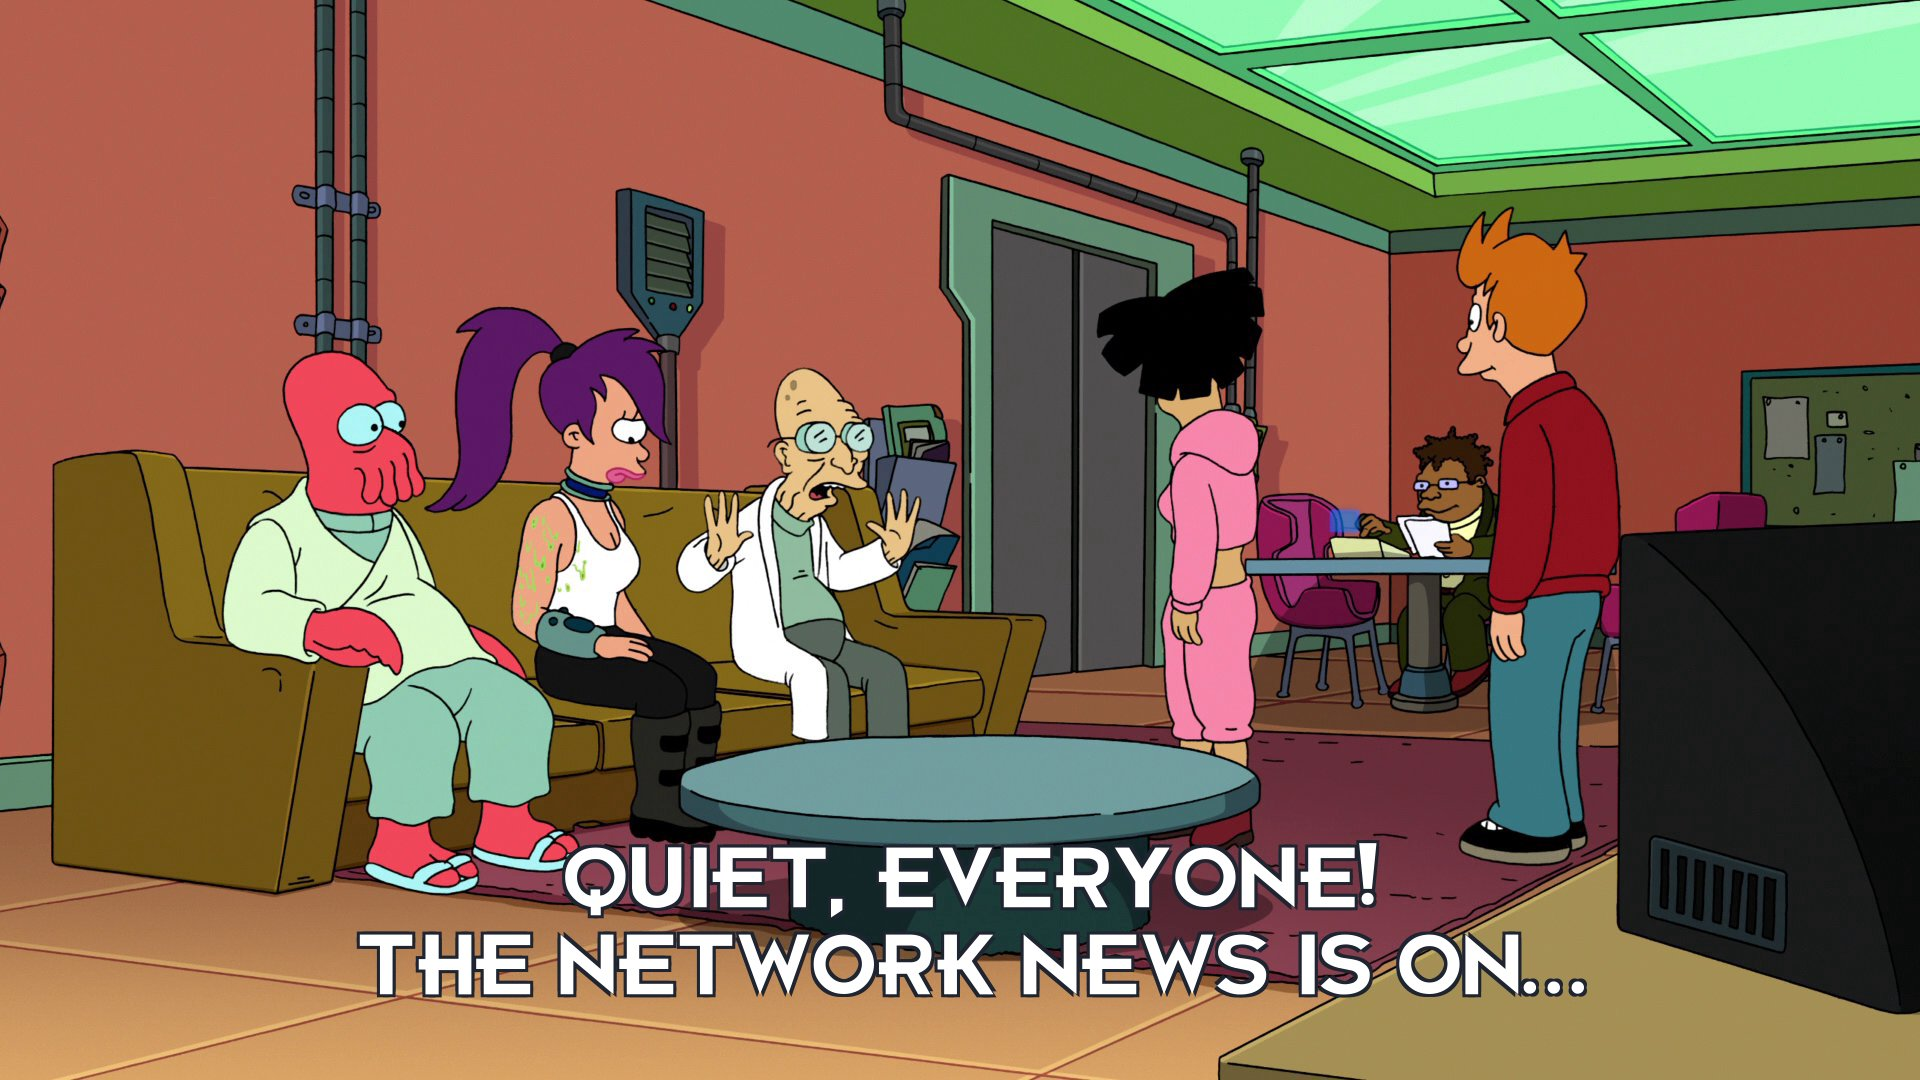 Prof Hubert J Farnsworth: Quiet, everyone! The network news is on...